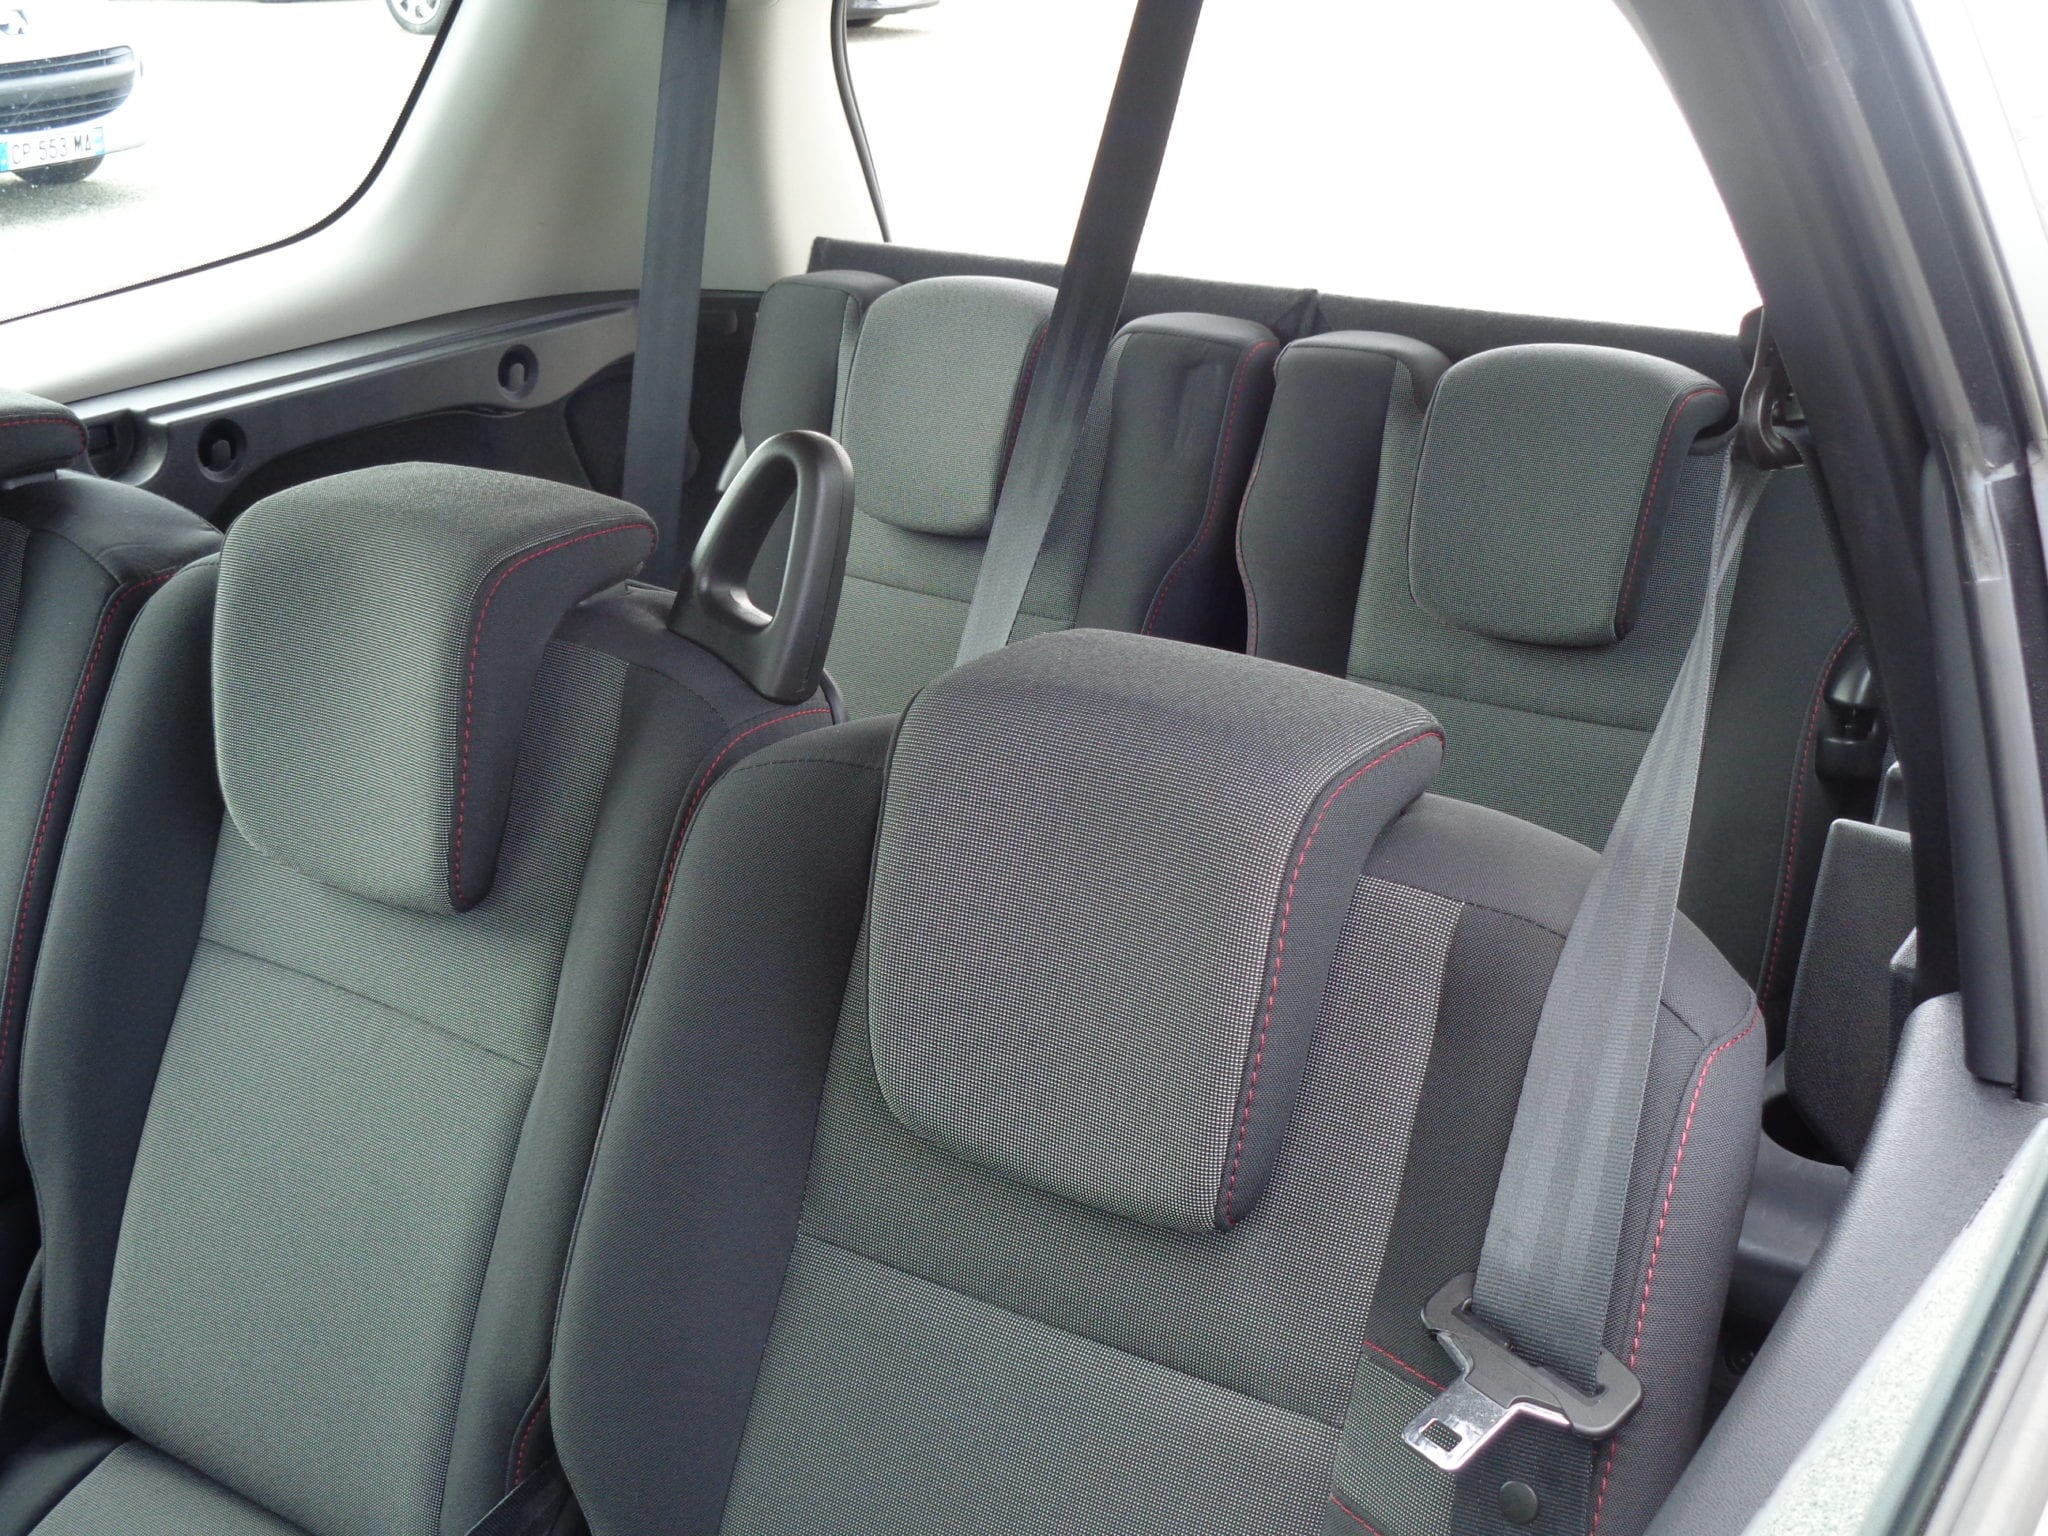 RENAULT GRAND SCENIC DCI 110 ENERGY LIFE ECO2 7 PLACES - Image 5